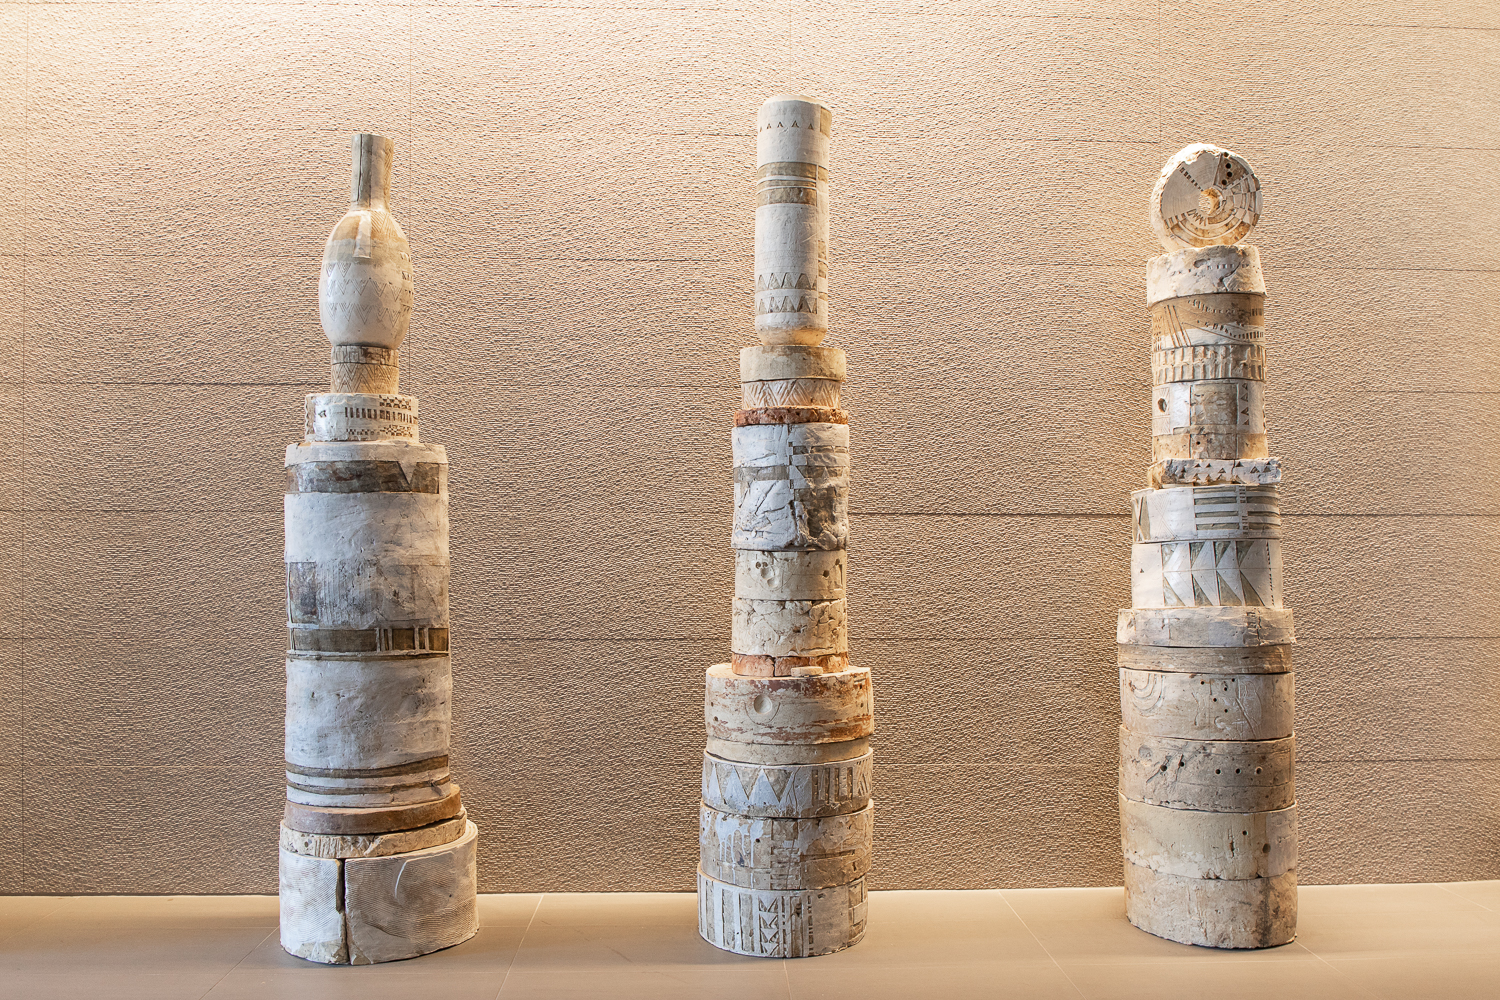 6' Clay Sculpture by Patricia Sannit